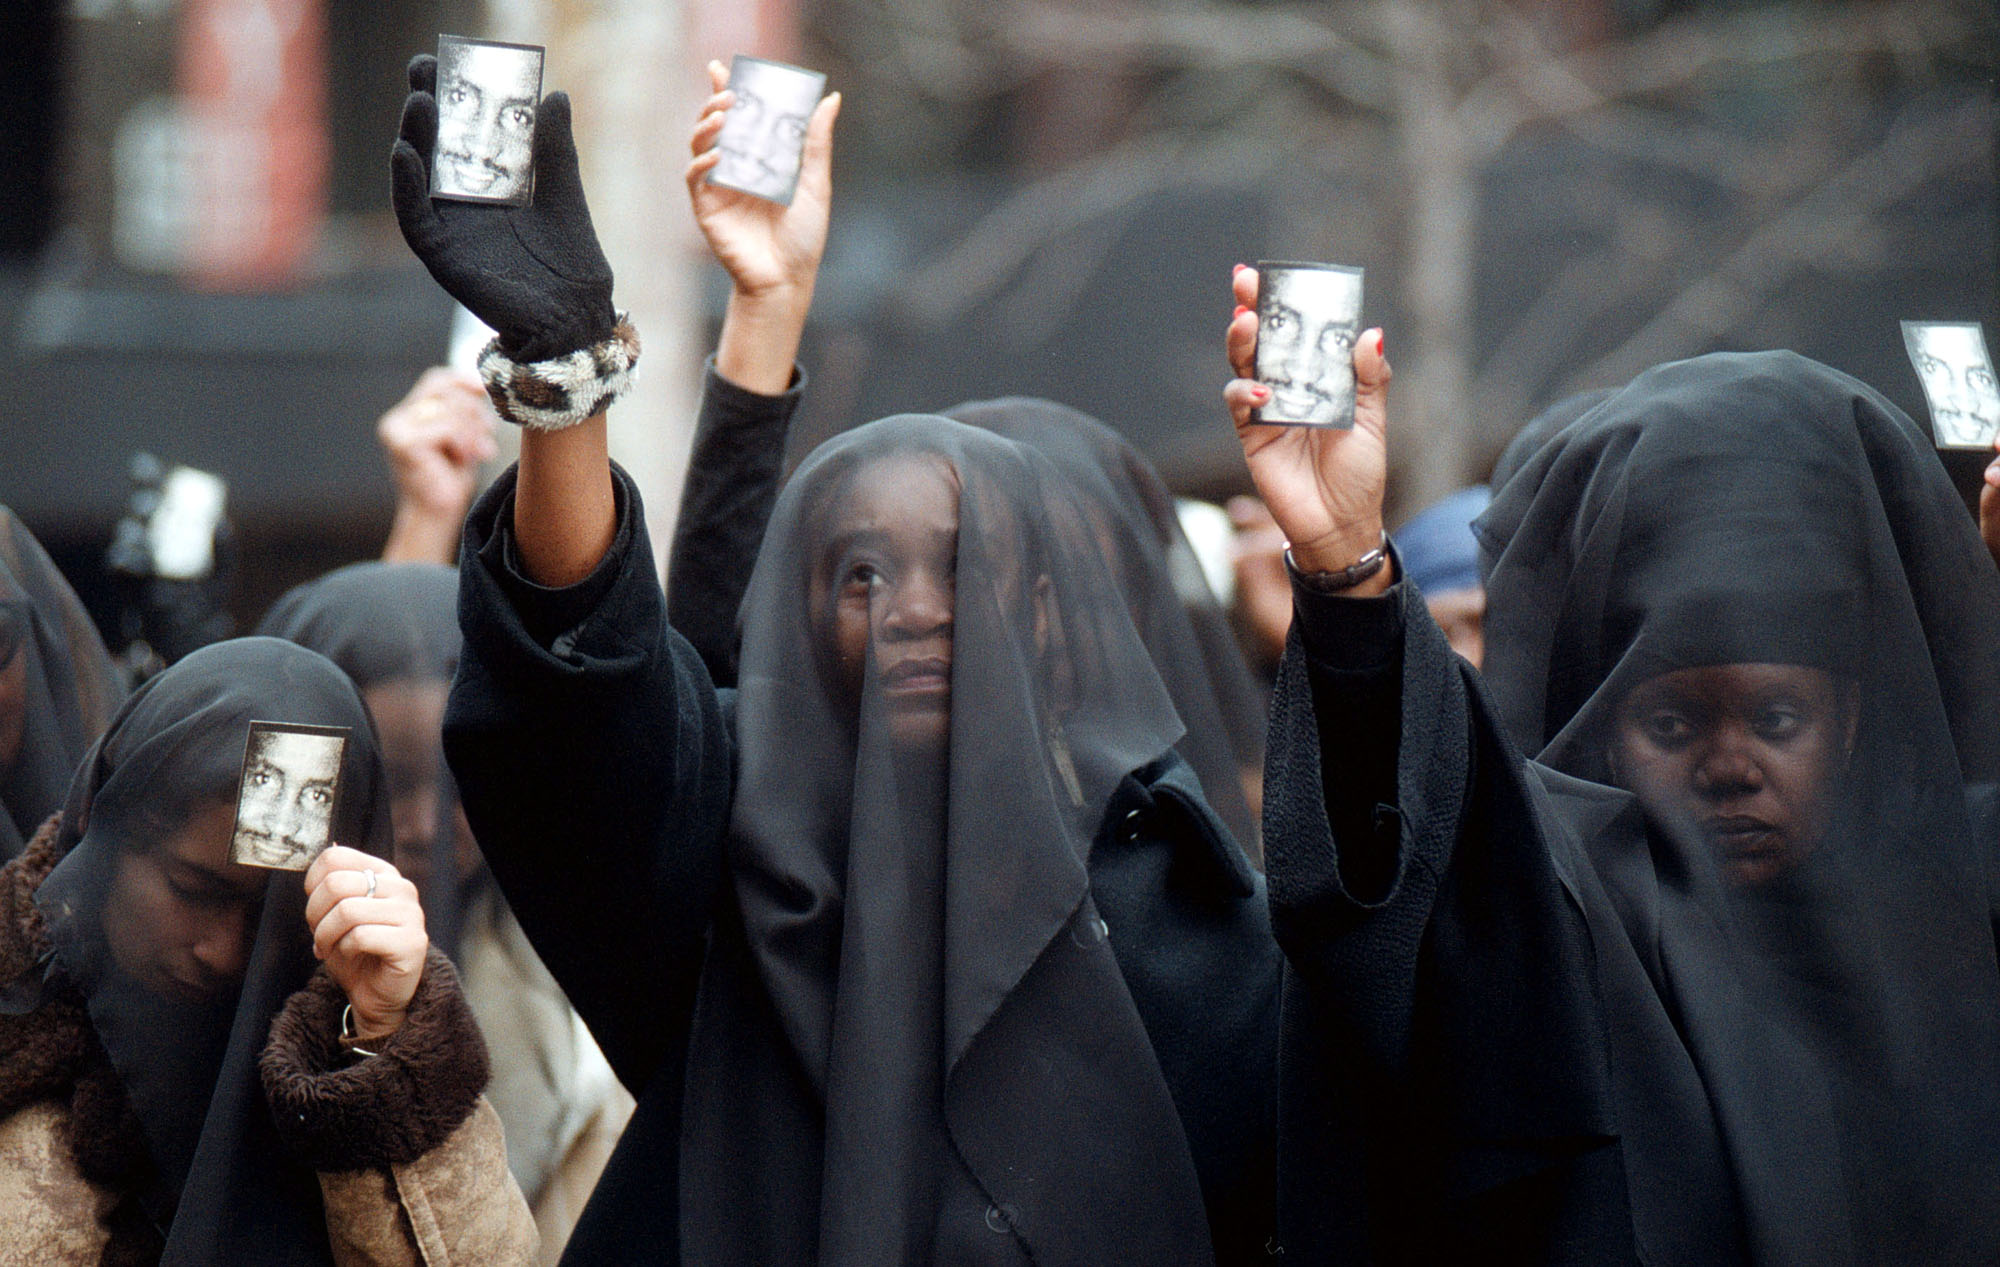 Women wearing veils of mourning hold cards with the image of Amadou Diallo before the start of a prayer vigil outside the United Nations February 27, 2000 in New York. The Rev. Al Sharpton is holding the vigil to protest the acquittal of four white New York City police officers charged in the February 1999 shooting death of Diallo. (Photo by Spencer Platt/Getty Images)